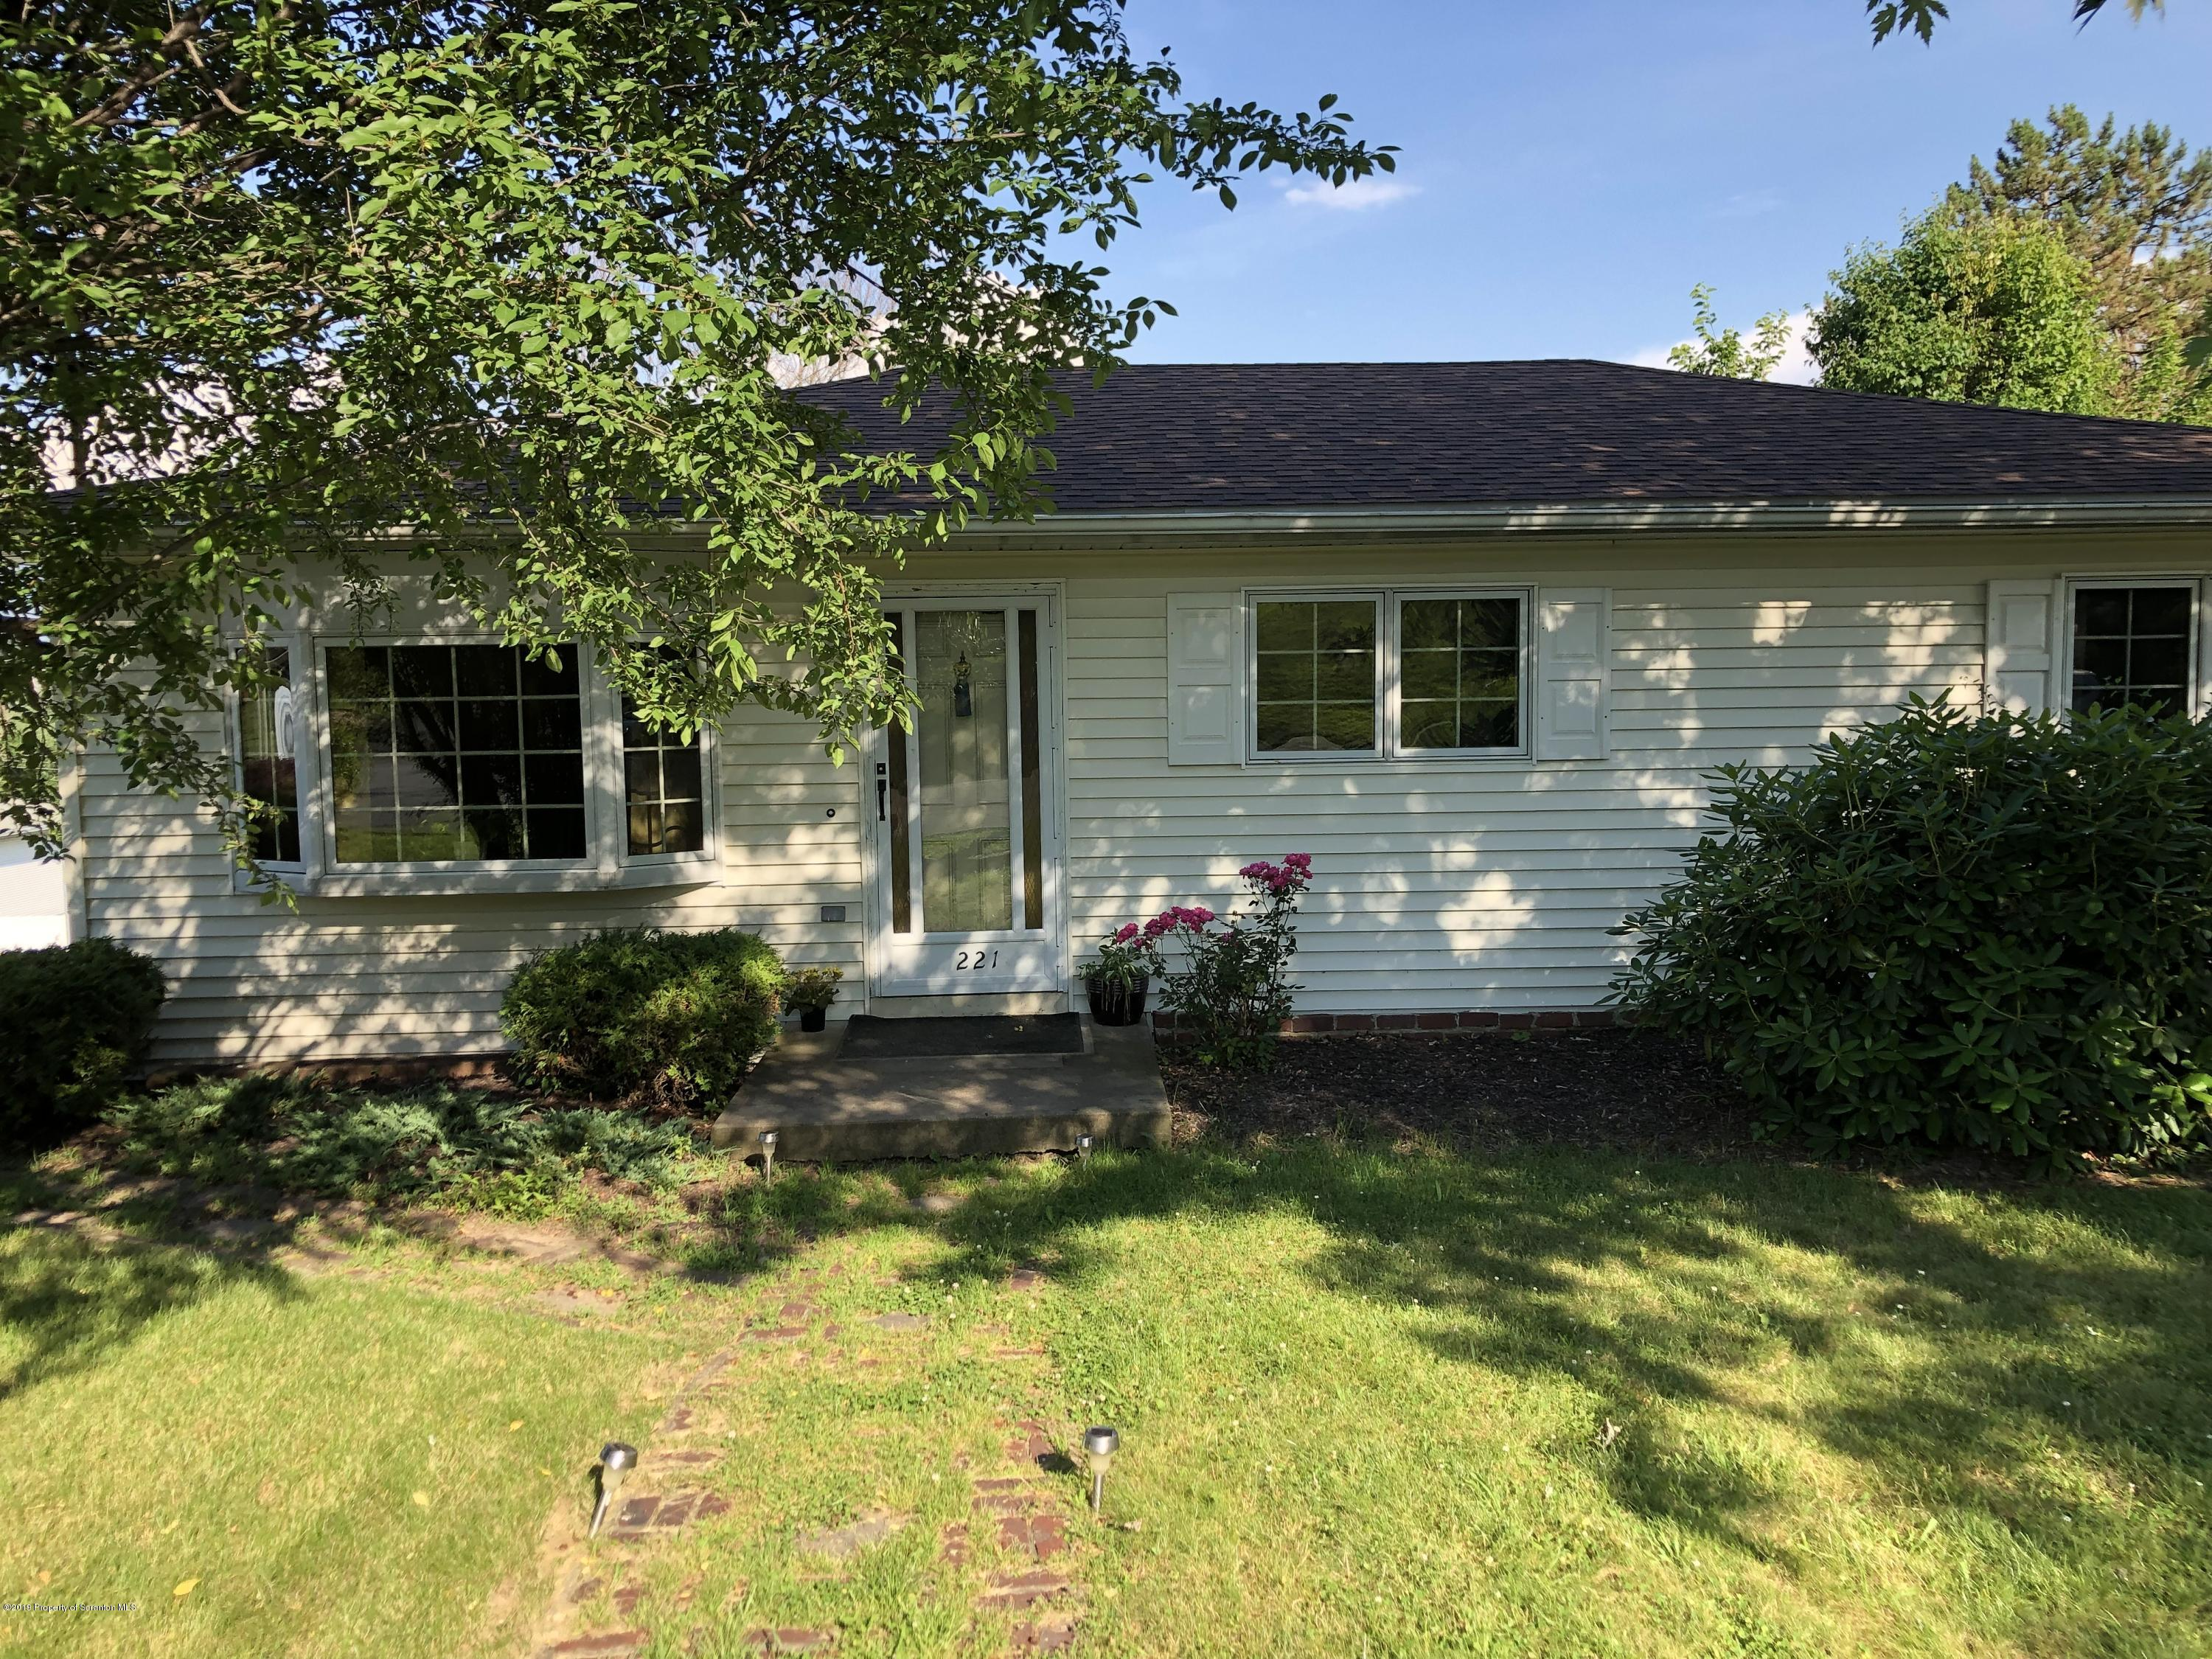 221 Dale Ave, Scranton, Pennsylvania 18504, 3 Bedrooms Bedrooms, 7 Rooms Rooms,1 BathroomBathrooms,Single Family,For Sale,Dale,19-592